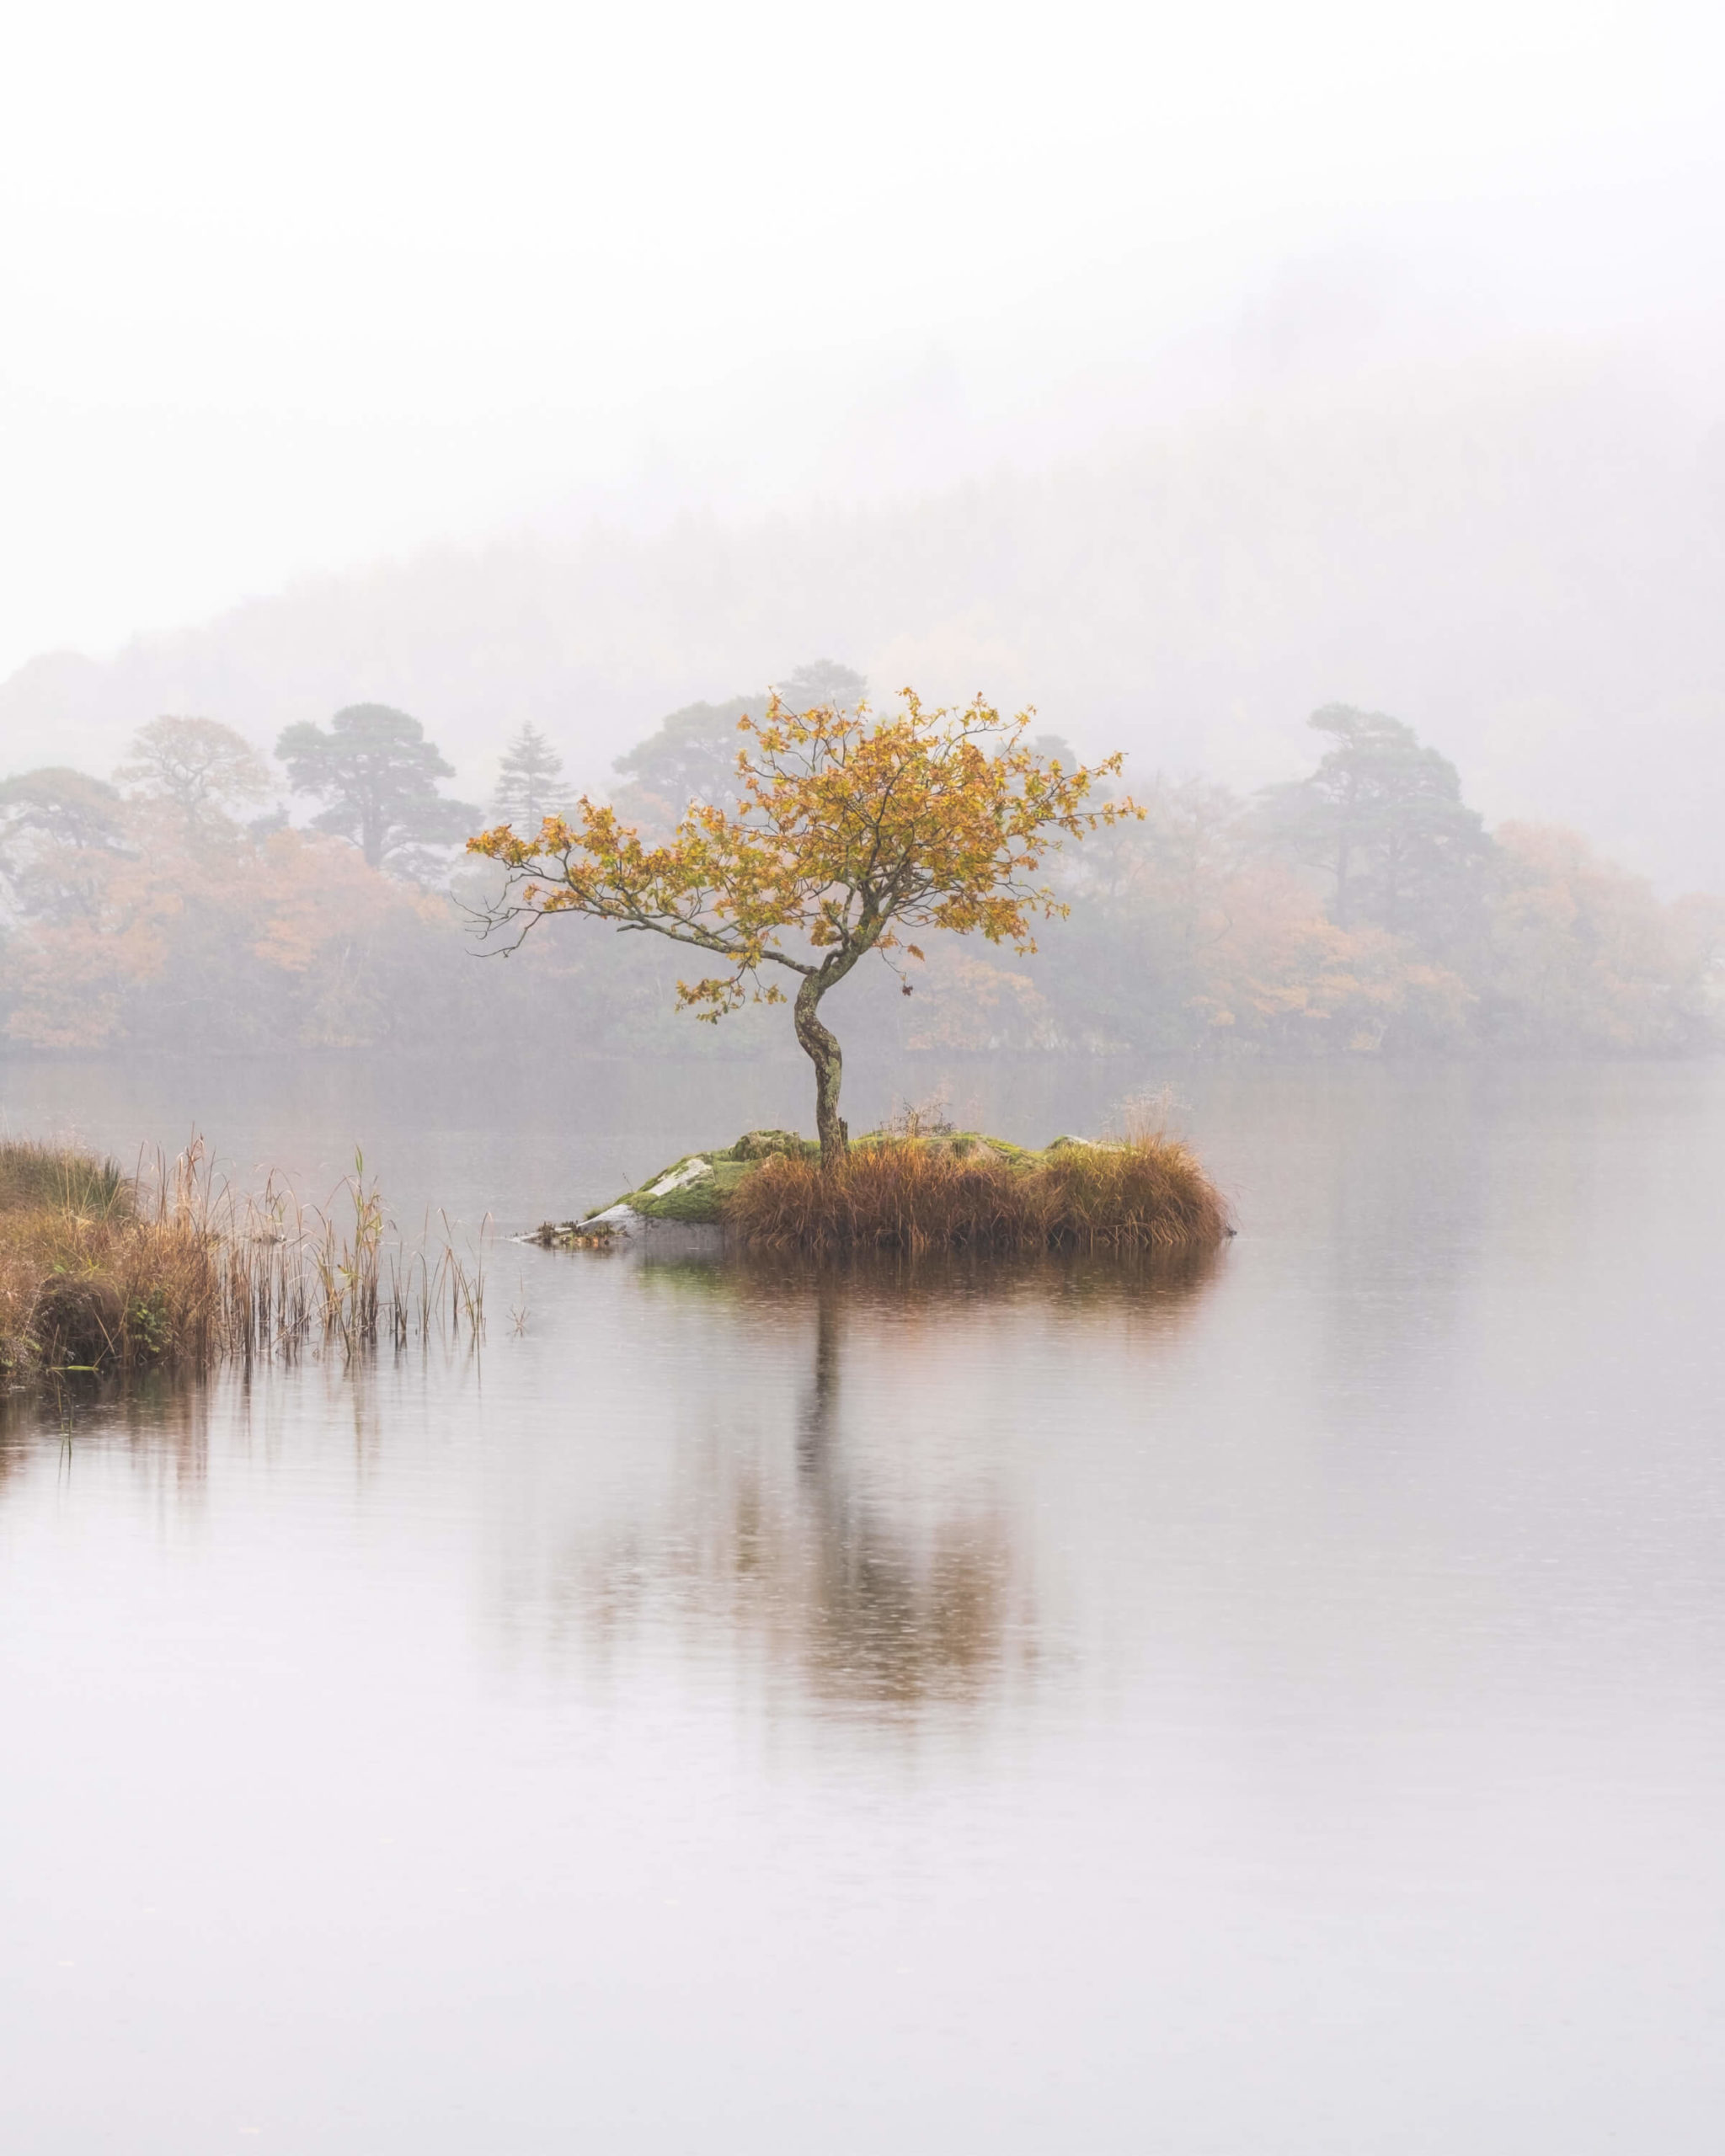 Mist and rain beats down over a clear lake's surface. A single, lone autumnal tree sits on a small island in the centre of the scene.